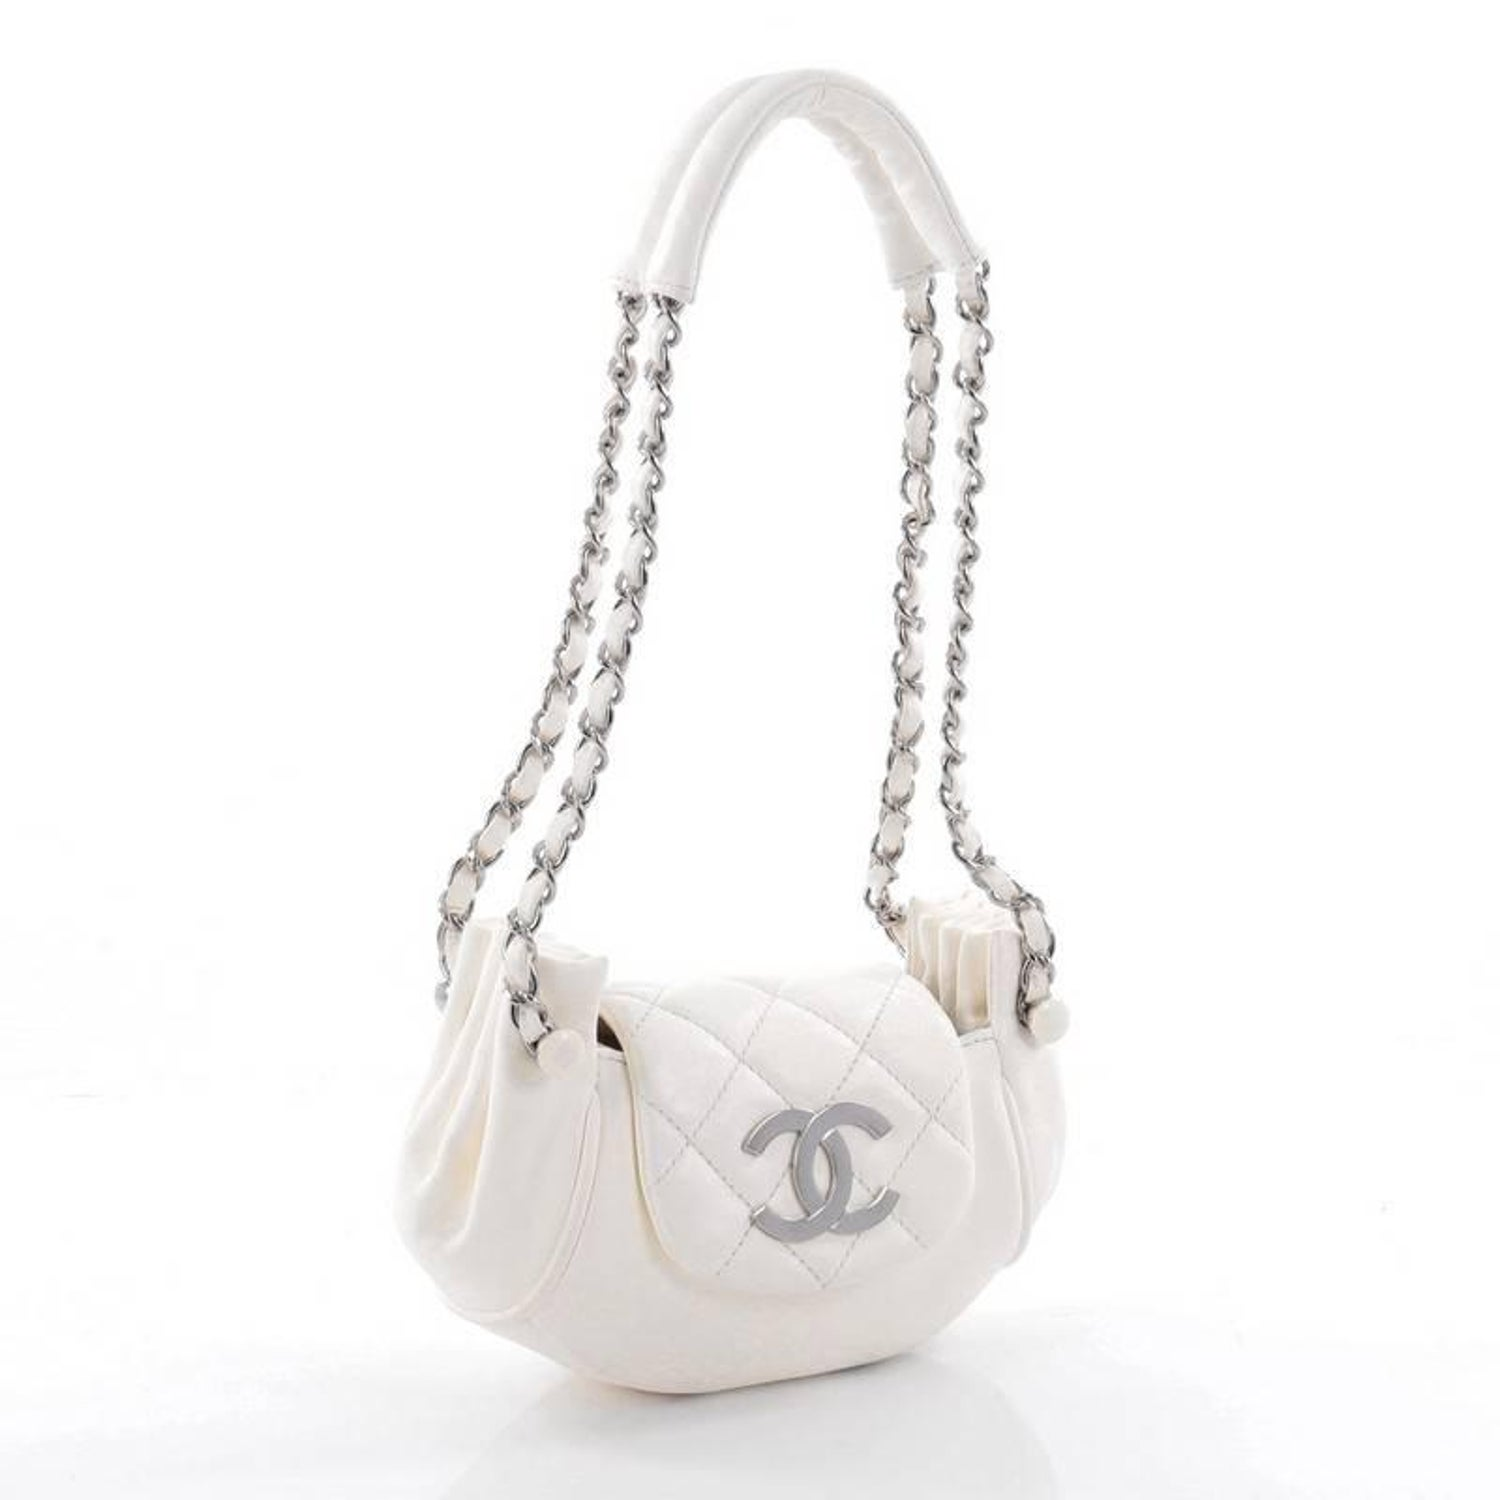 95e13fdea03058 Chanel Accordion Flap Bag Quilted Lambskin Mini at 1stdibs